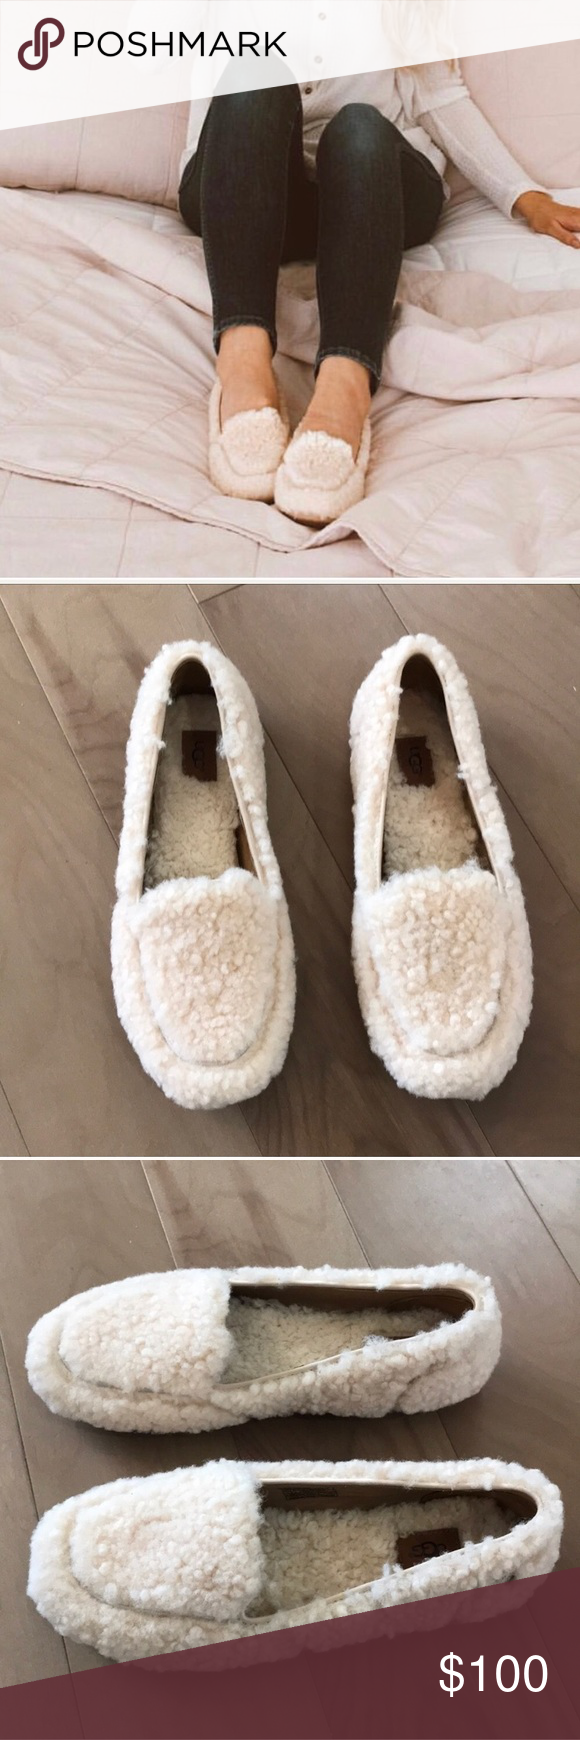 5b42c8656c1 Brand New Sherpa Ugg Hailey Fluff Loafer/ Slippers Brand new, only ...